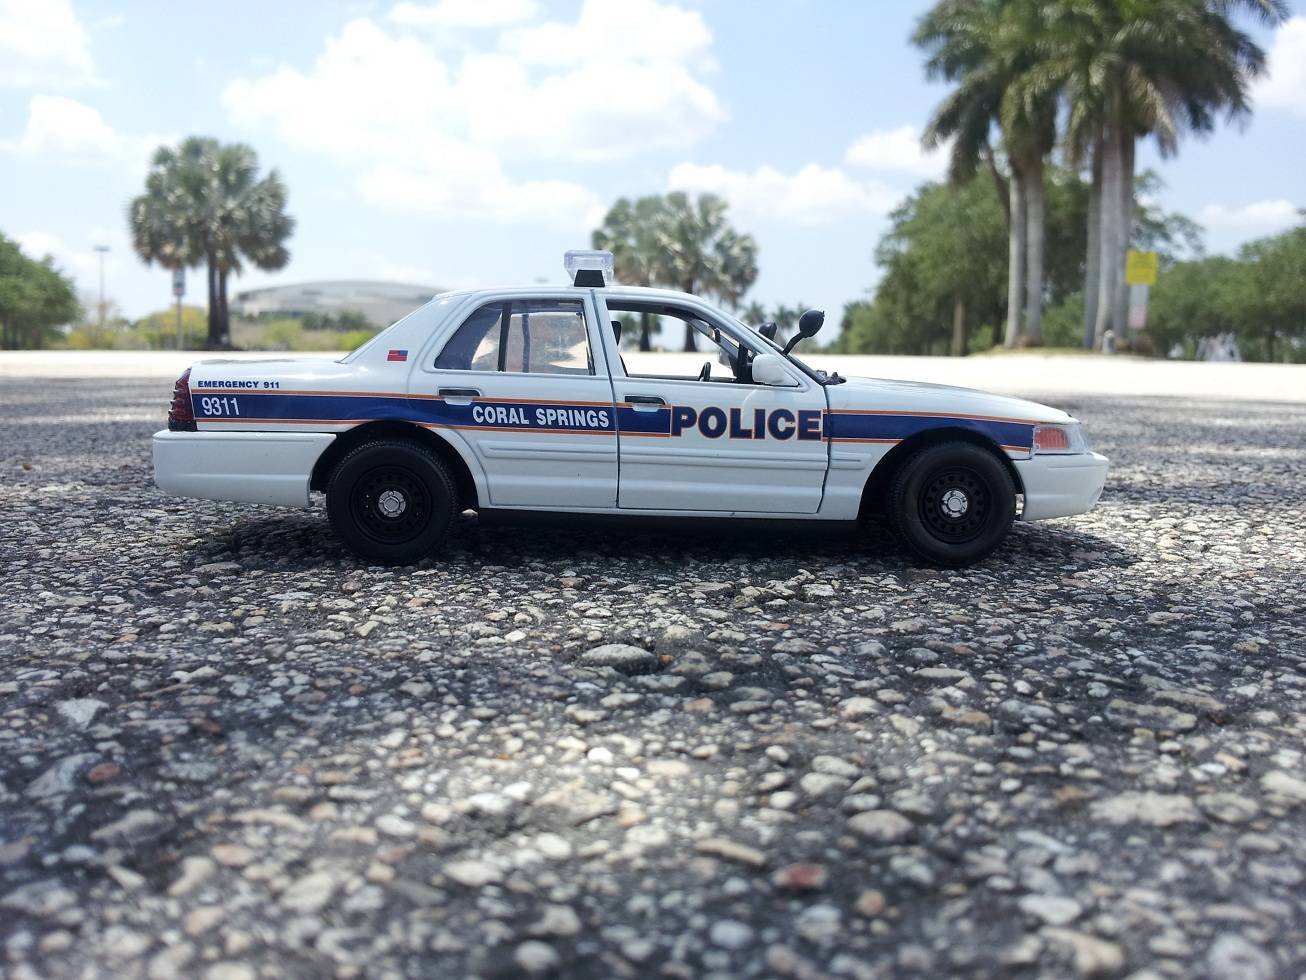 CORAL SPRINGS POLICE DEPARTMENT